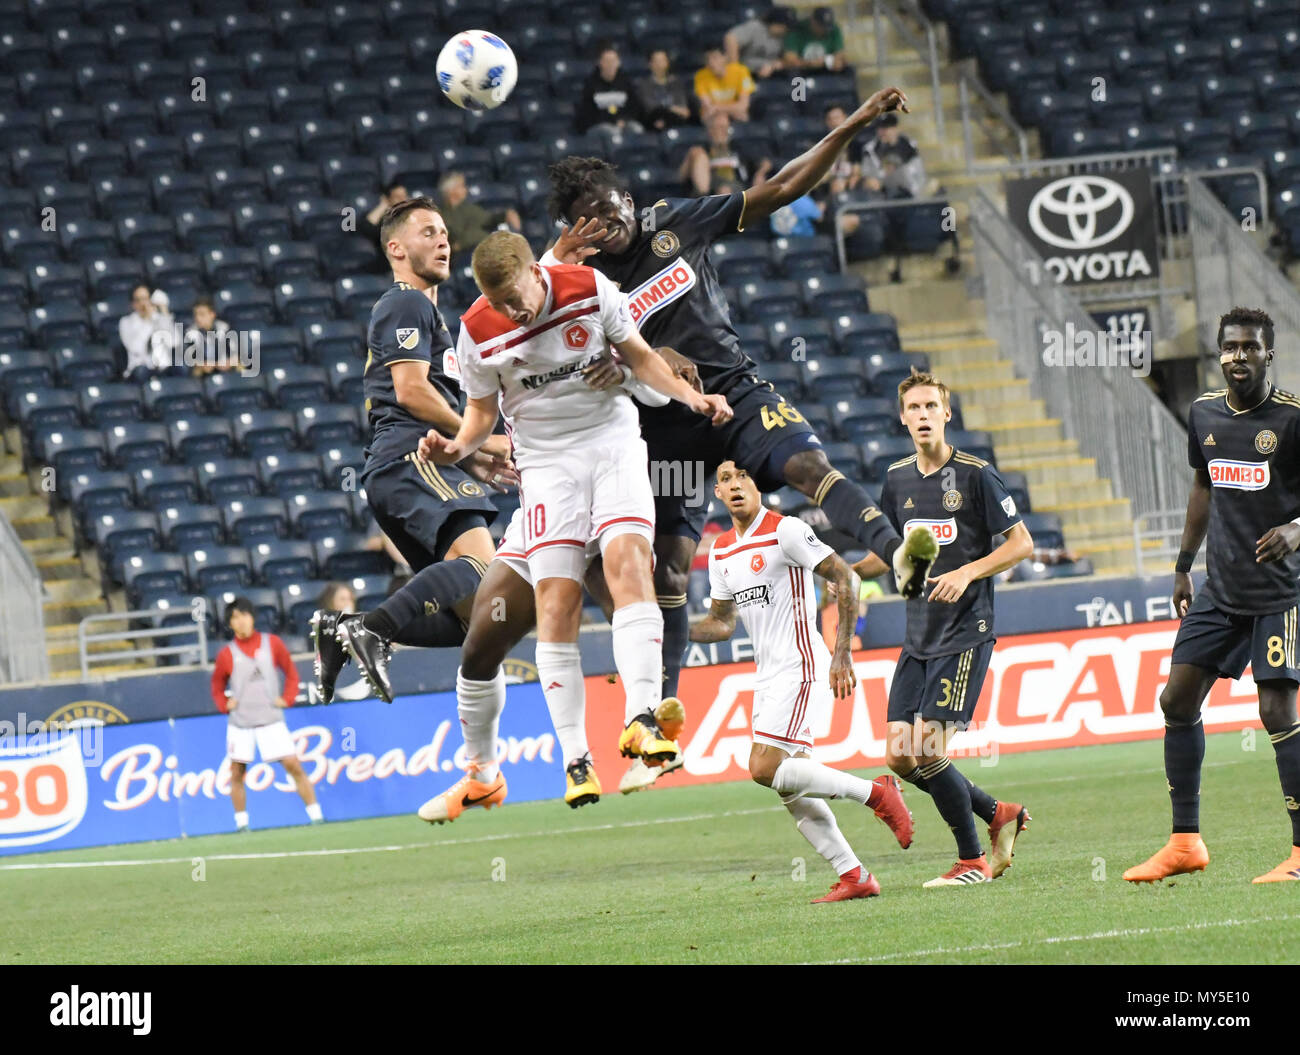 Chester, Pennsylvania, USA. 5th June, 2018. Philadelphia Union and the Richmond Kickers in action during the match at Talen Energy Stadium, Chester PA Credit: Ricky Fitchett/ZUMA Wire/Alamy Live News Stock Photo